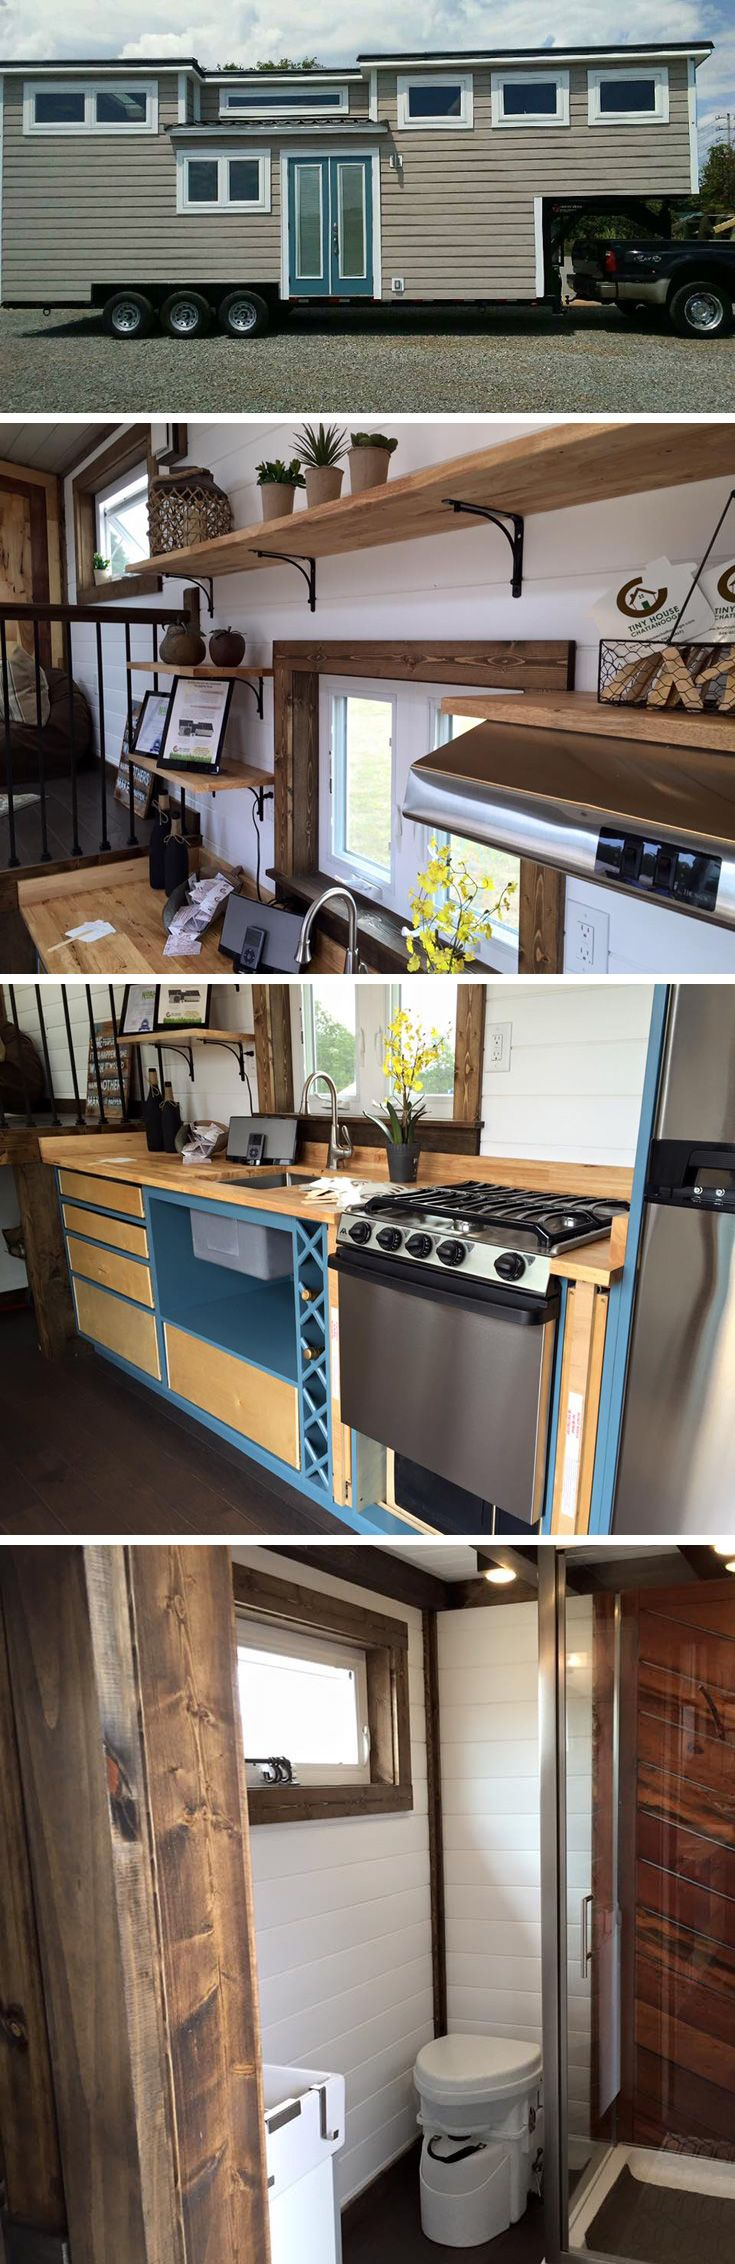 "Voted ""Best in Show"" at the 2016 Tiny House Jamboree!  A 299 sq.ft. gooseneck tiny house."